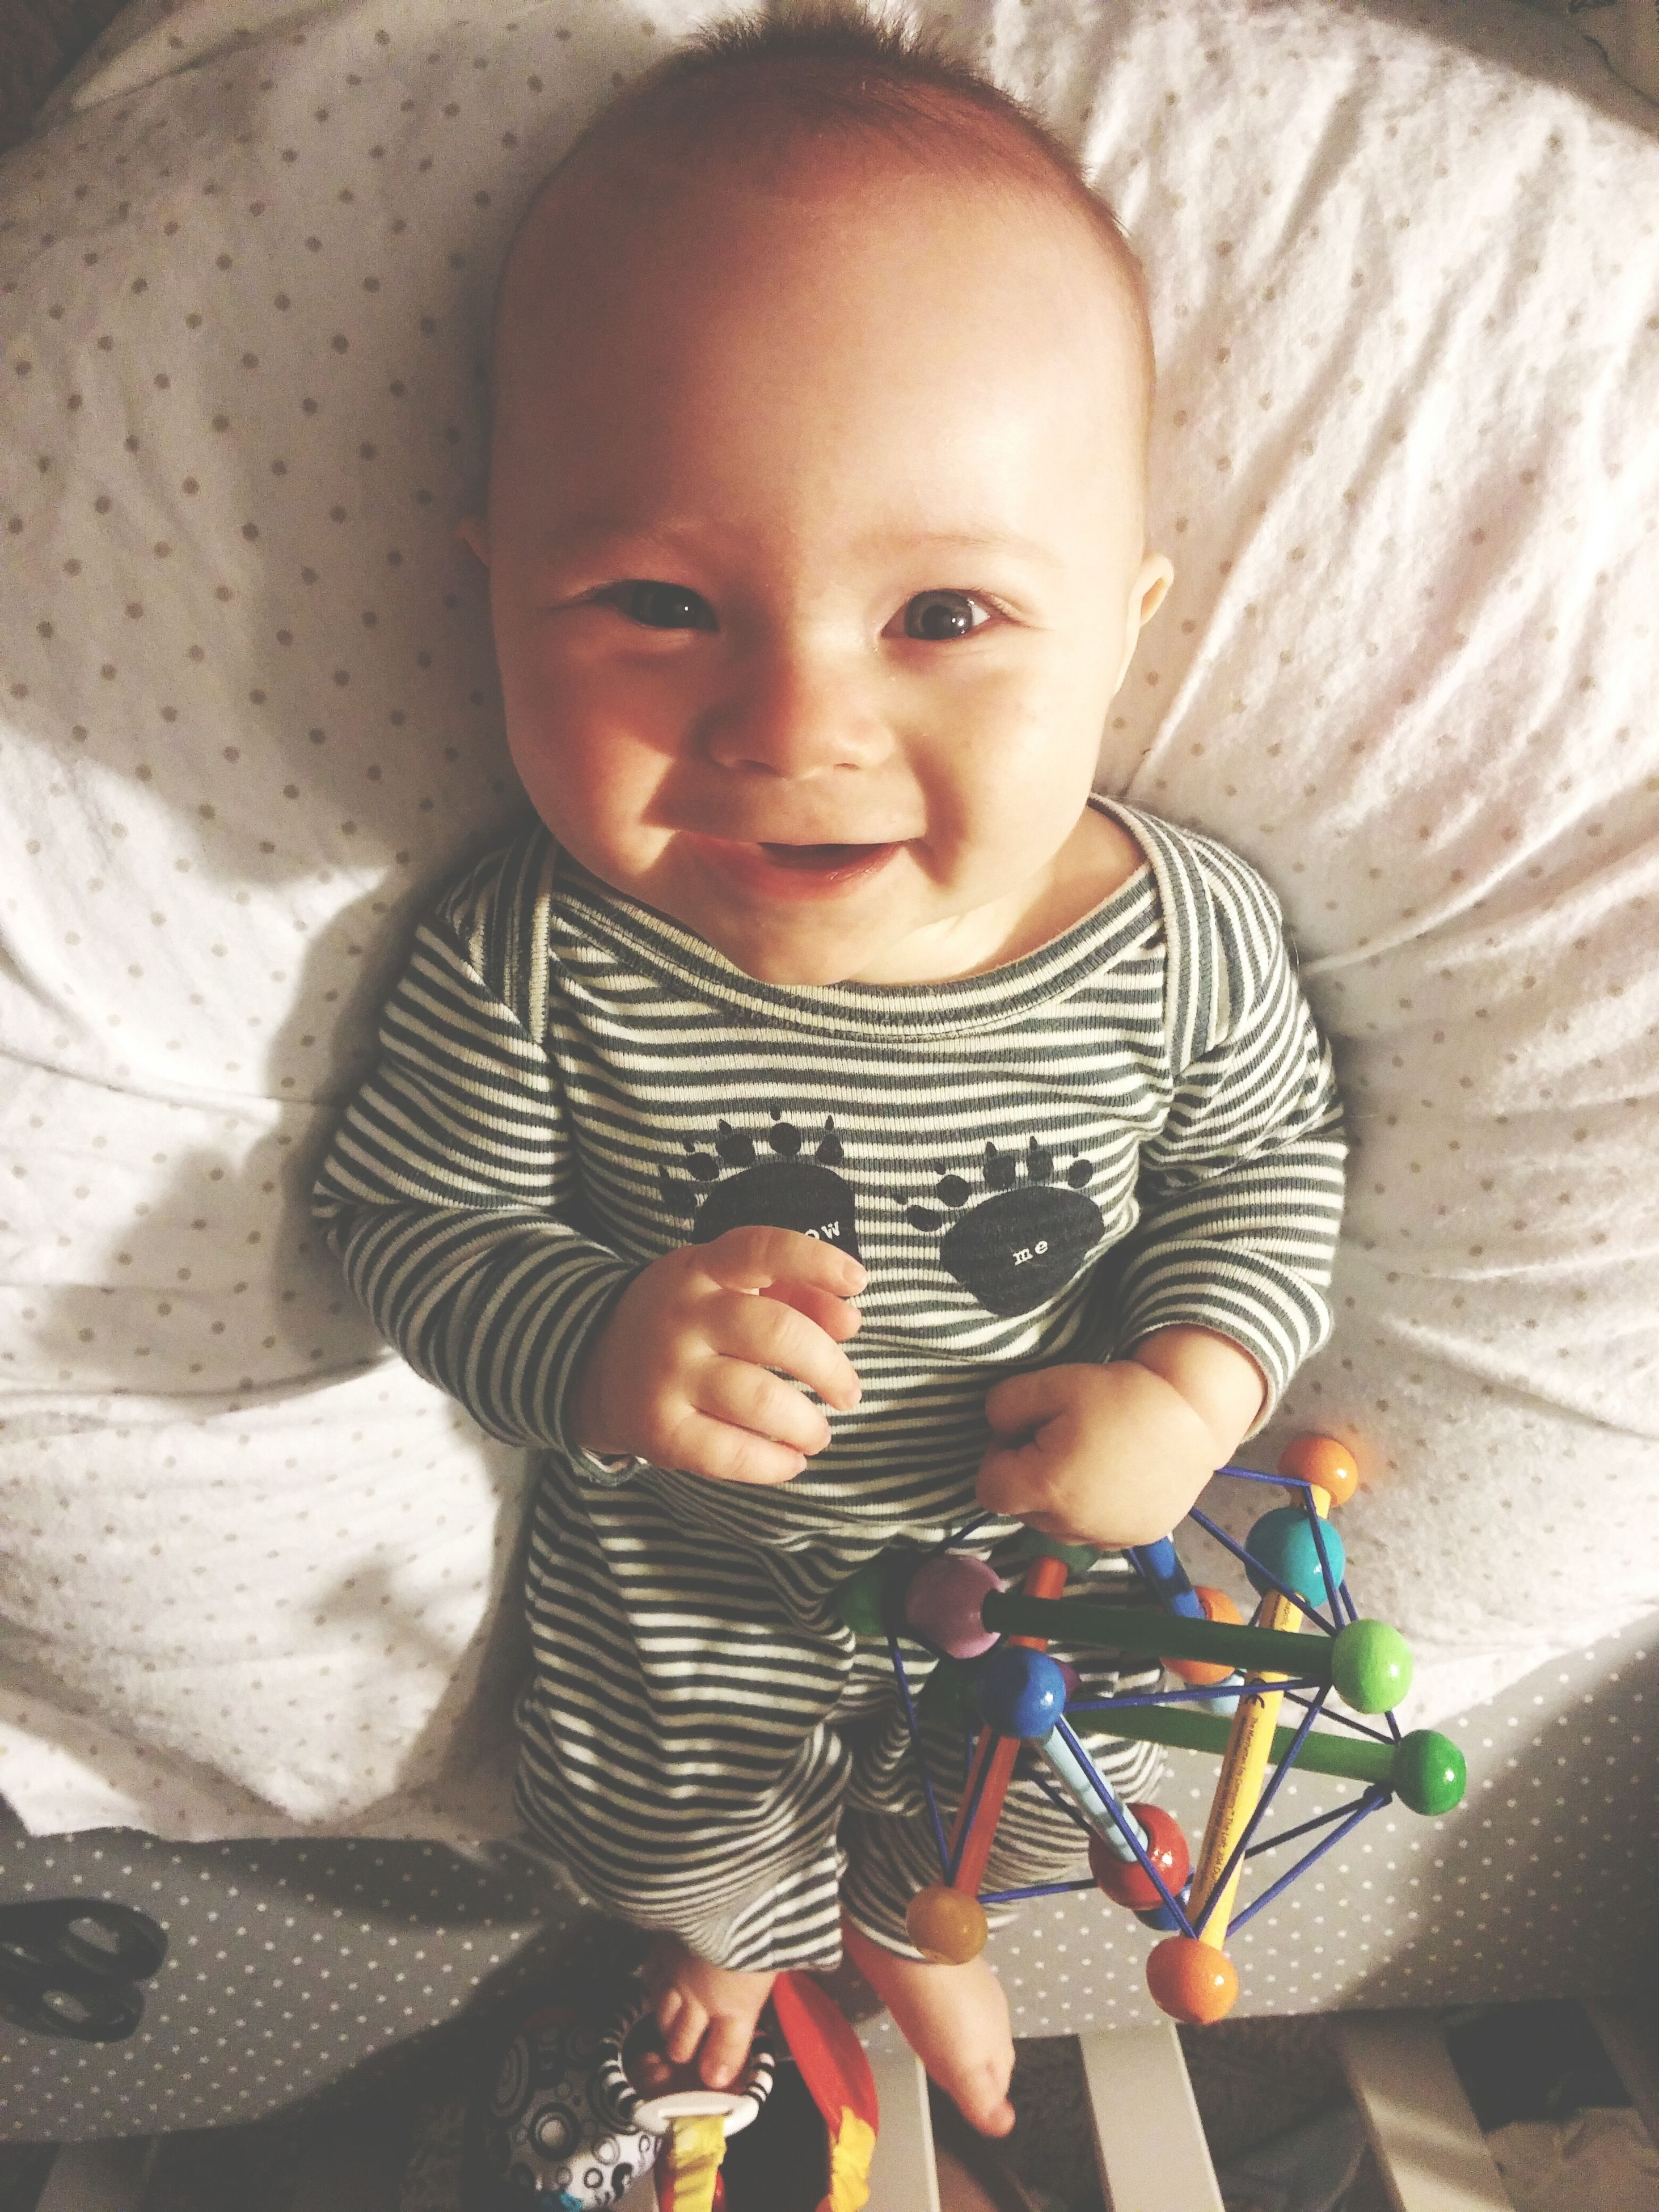 childhood, innocence, elementary age, cute, person, indoors, boys, girls, portrait, looking at camera, casual clothing, toddler, leisure activity, high angle view, lifestyles, babyhood, baby, smiling